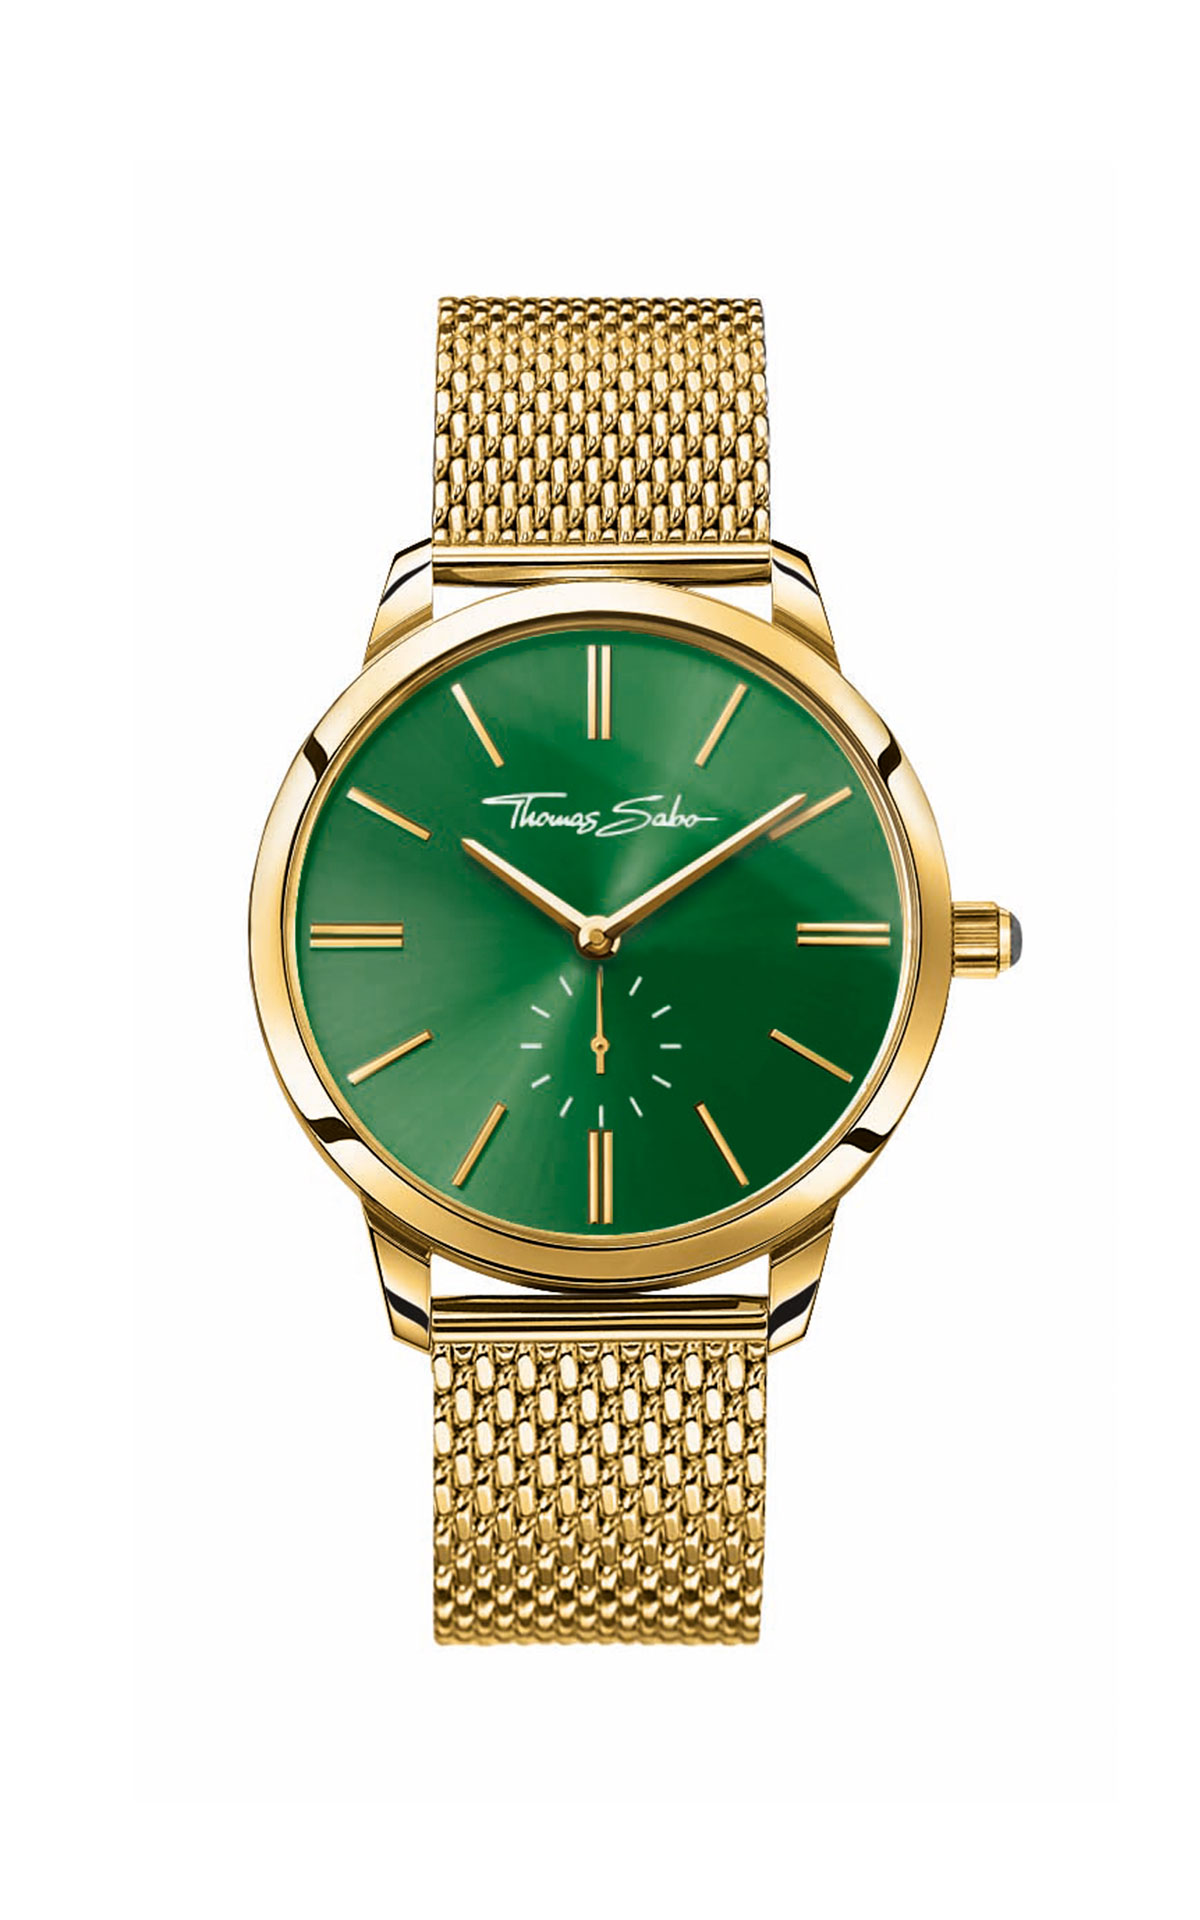 Gold watch with green dial Thomas Sabo